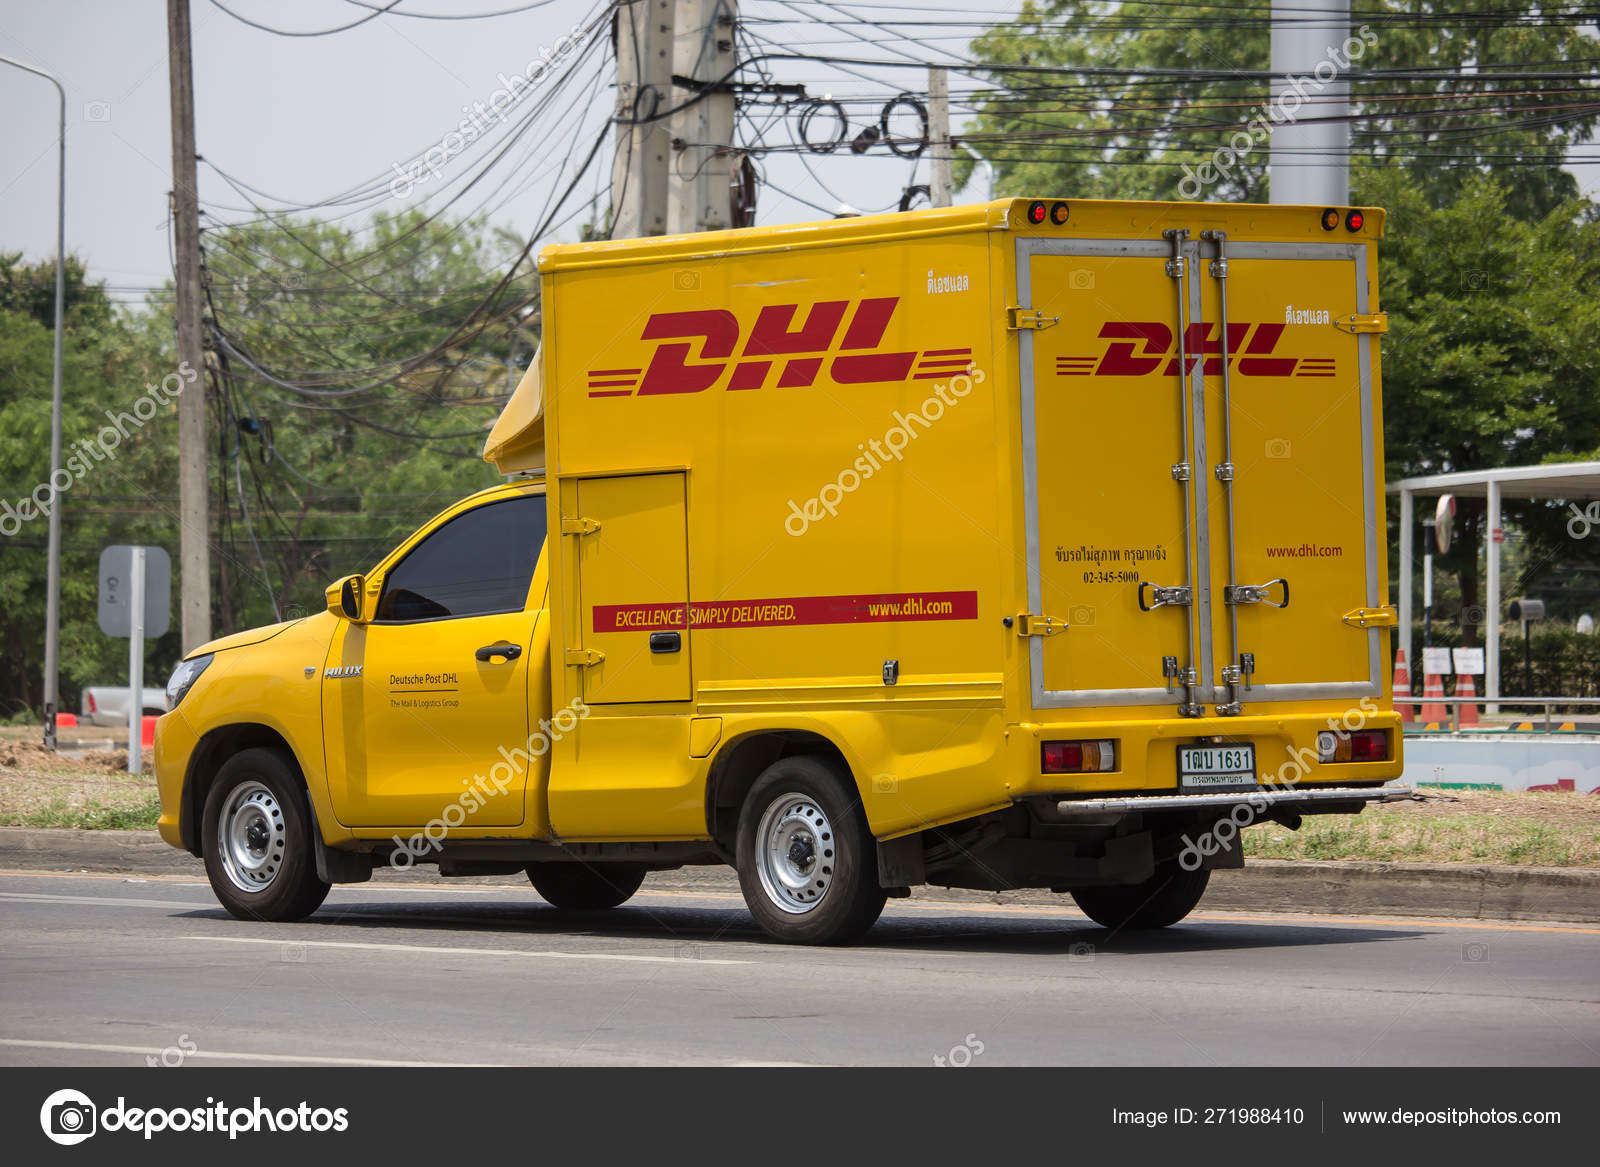 Dhl Pickup Locations >> Dhl Express And Logistics Container Stock Editorial Photo